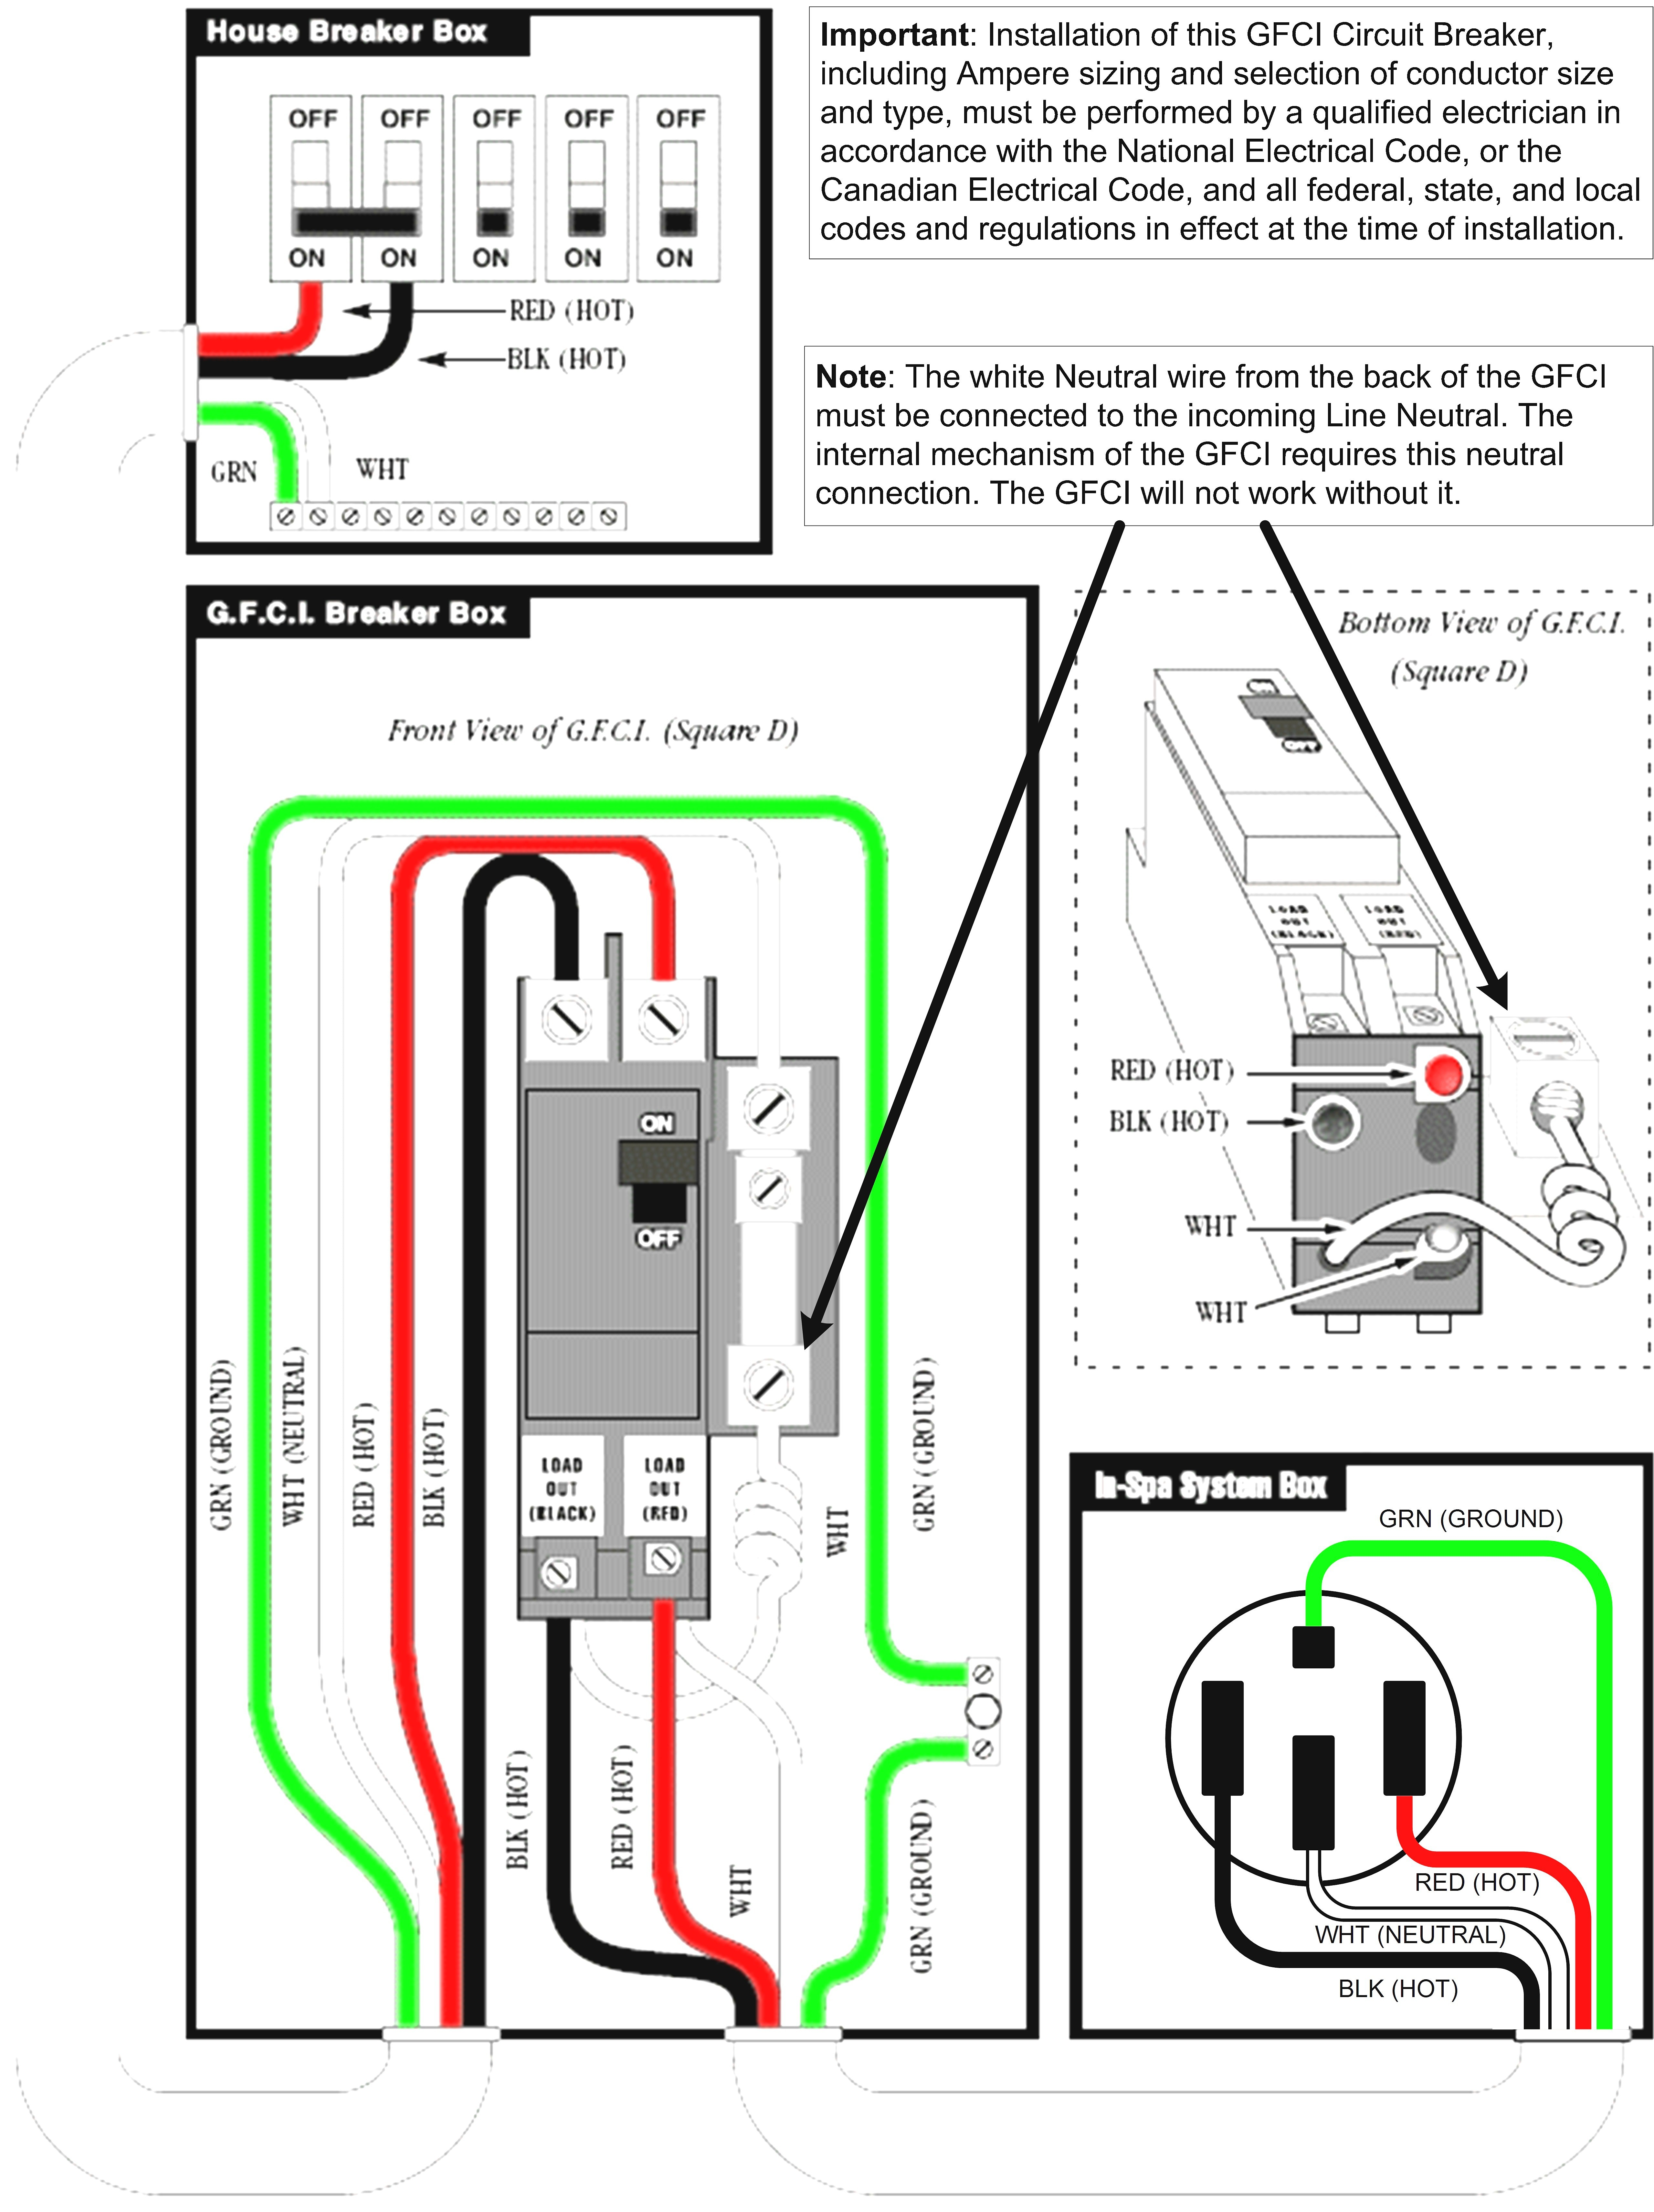 240v plug wiring diagram wiring diagram image rh mainetreasurechest com 240V Wiring Basics Wiring a 240V Hot Water Element